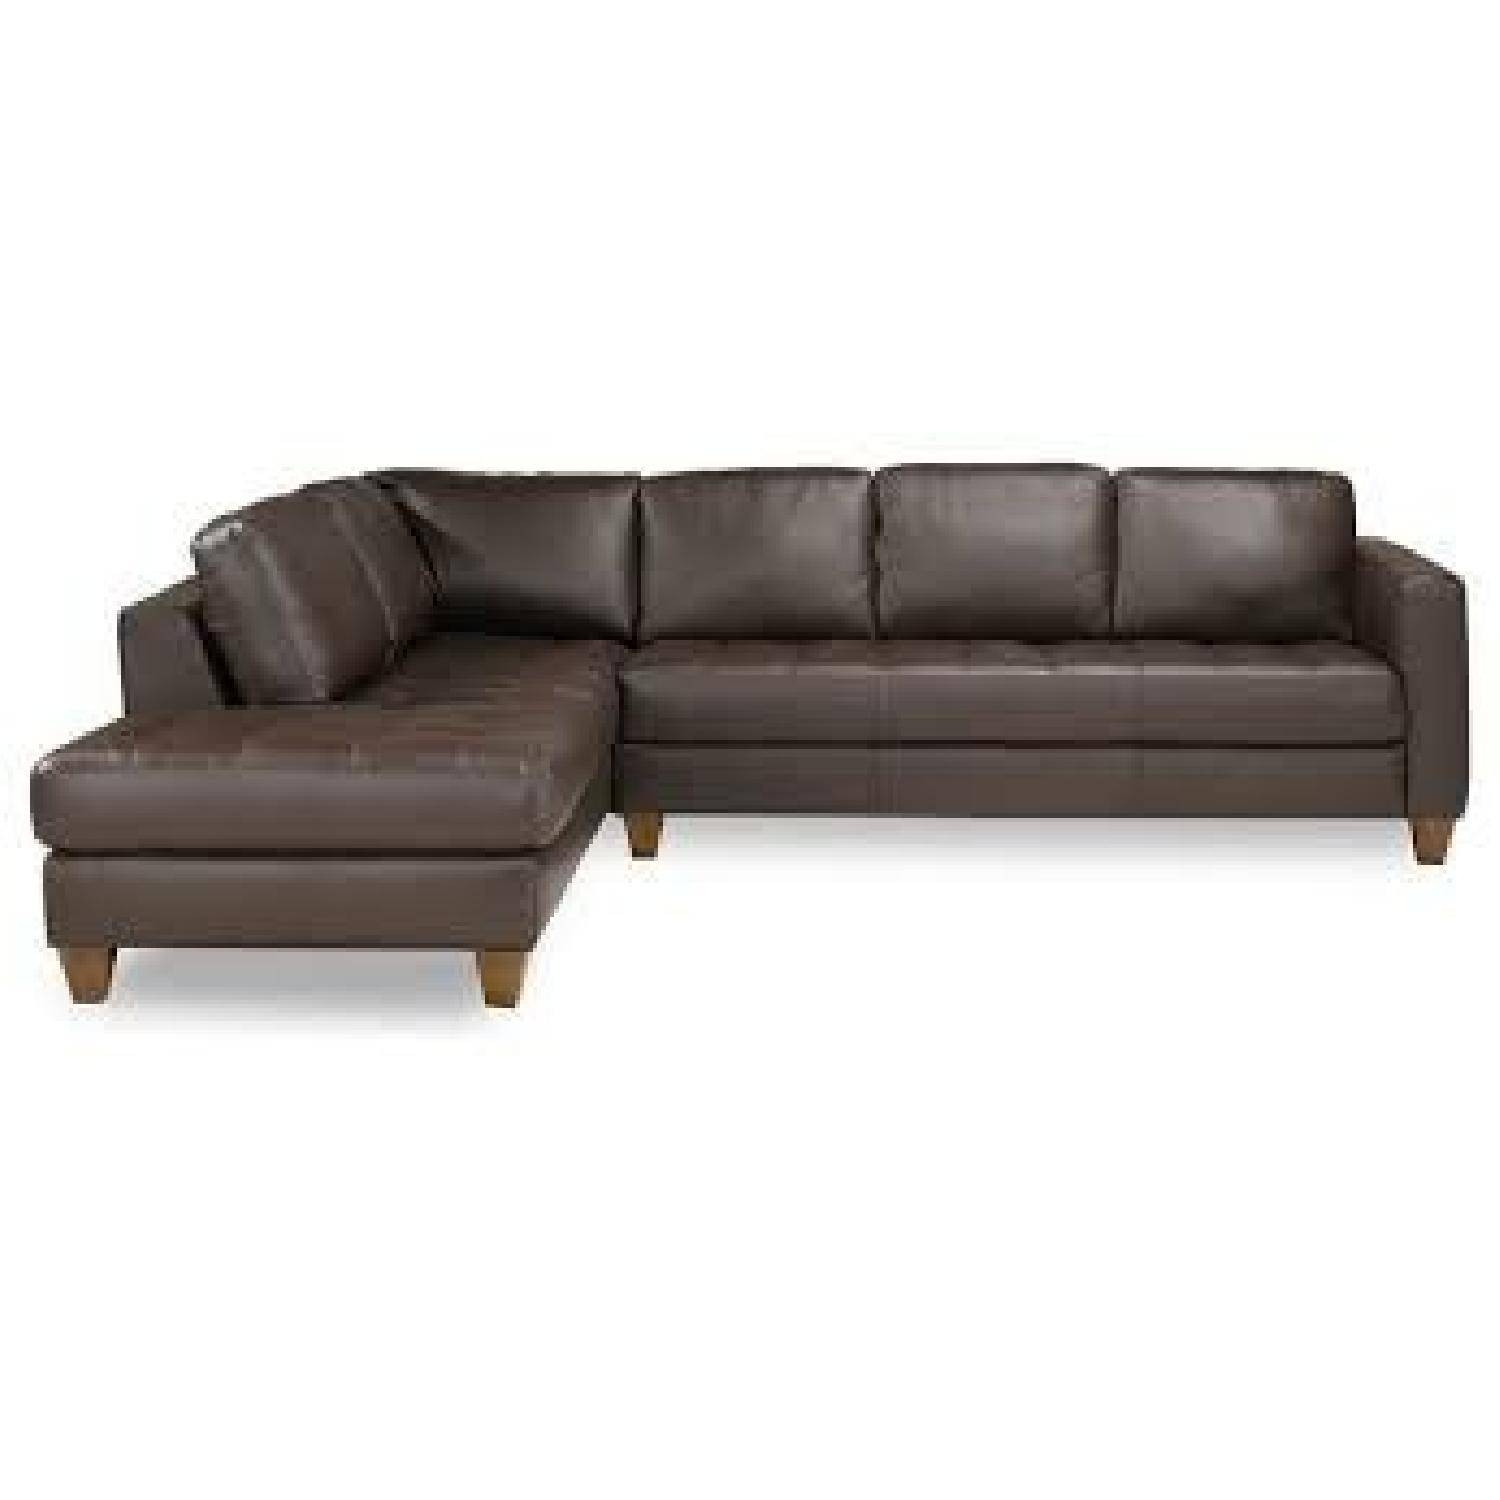 Macy's Milano Brown Leather Sectional Sofa - Aptdeco with regard to Macys Sofas (Image 13 of 25)